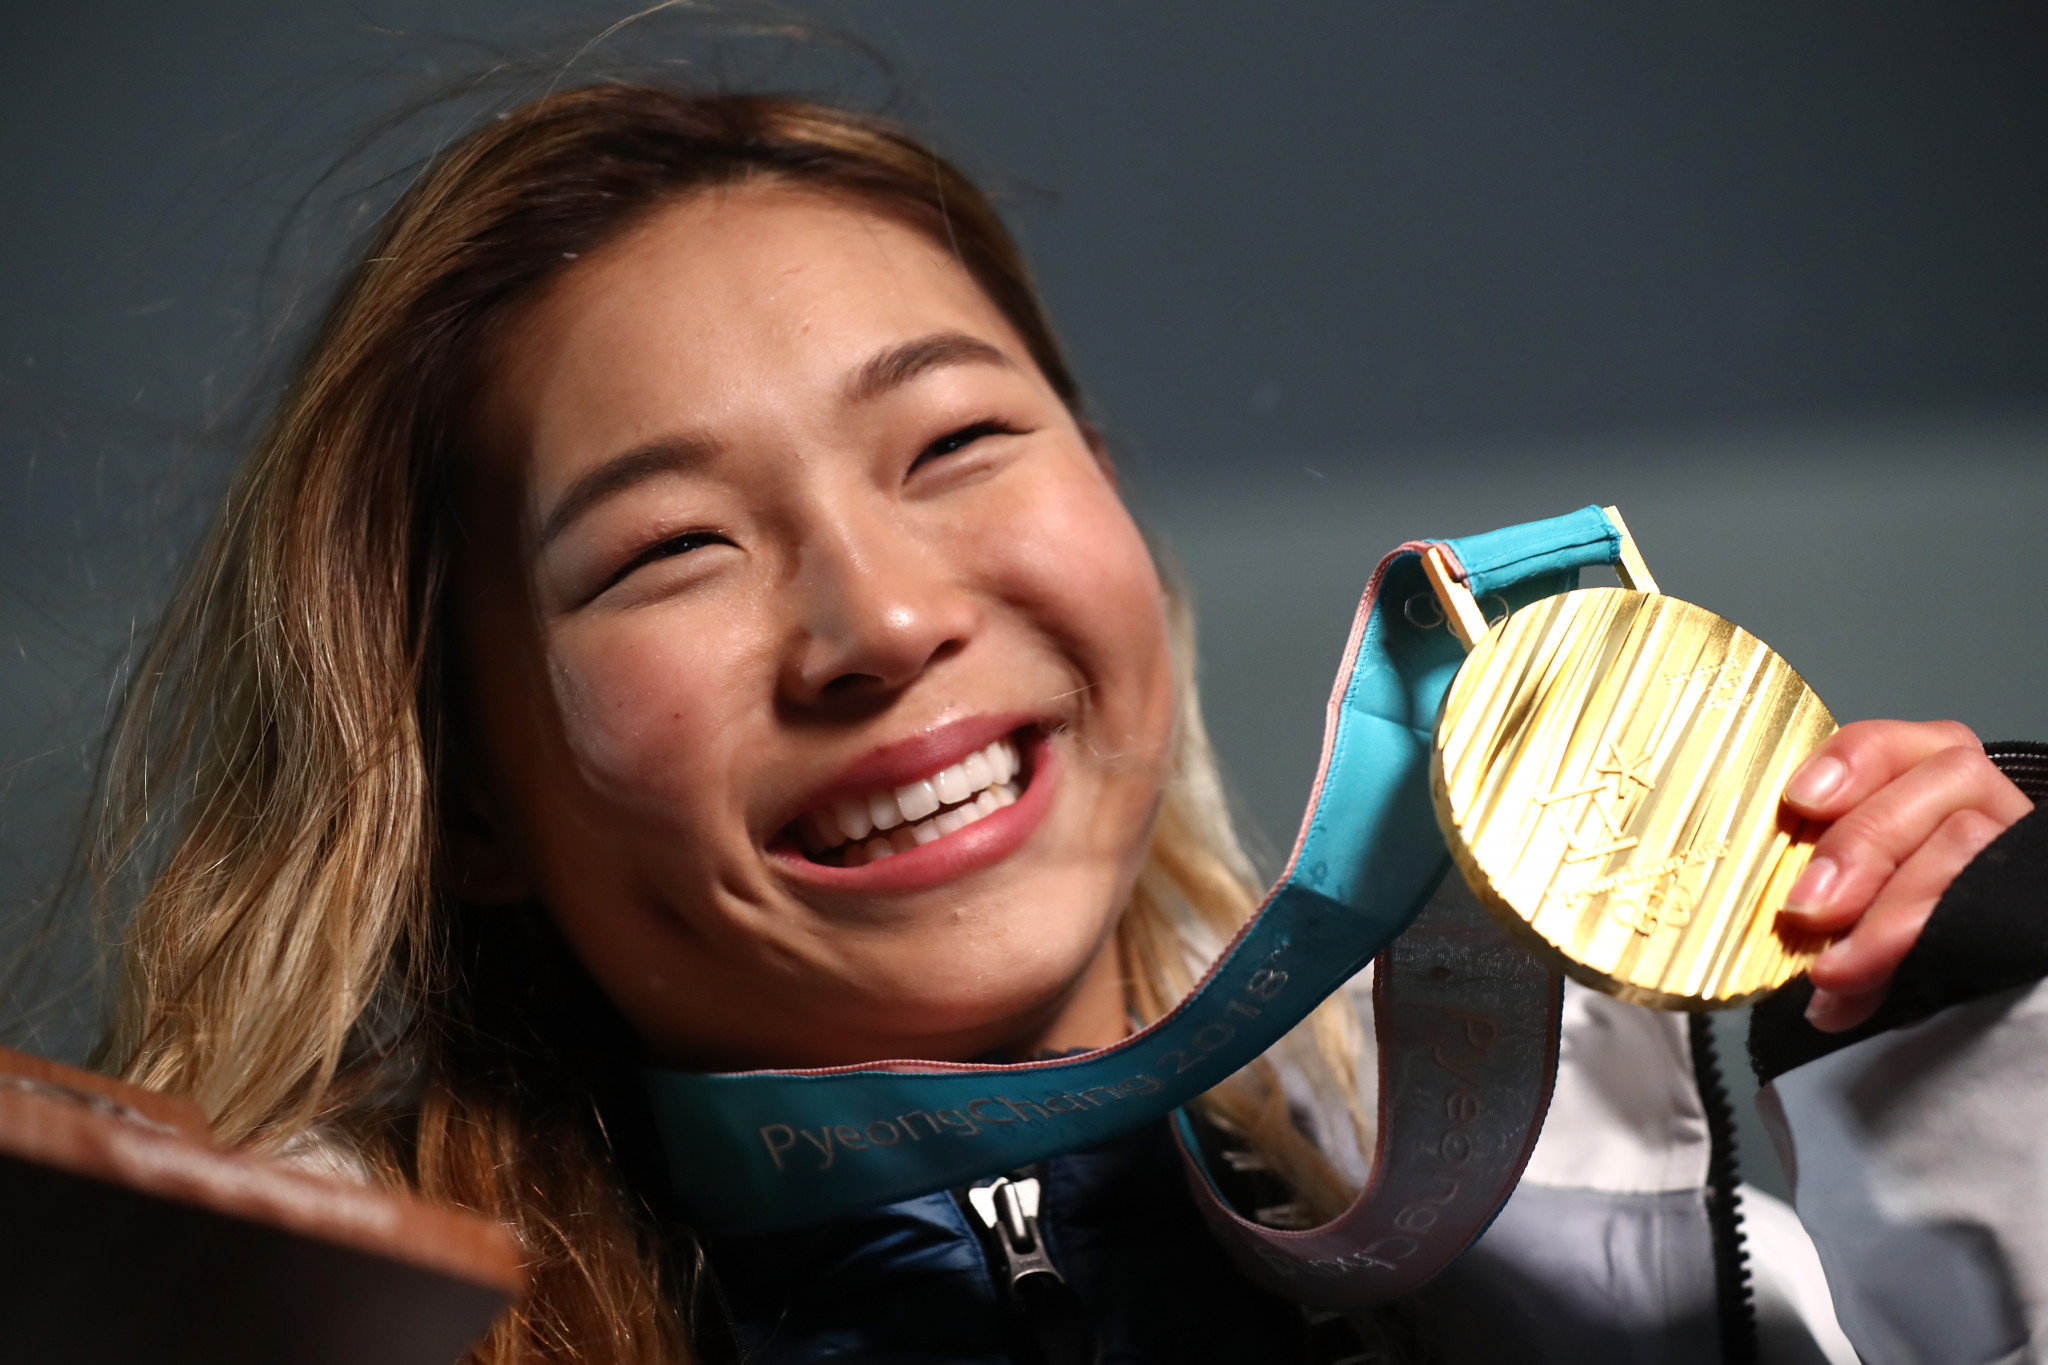 Kim became the youngest woman to win an Olympic snowboarding gold medal ©Getty Images